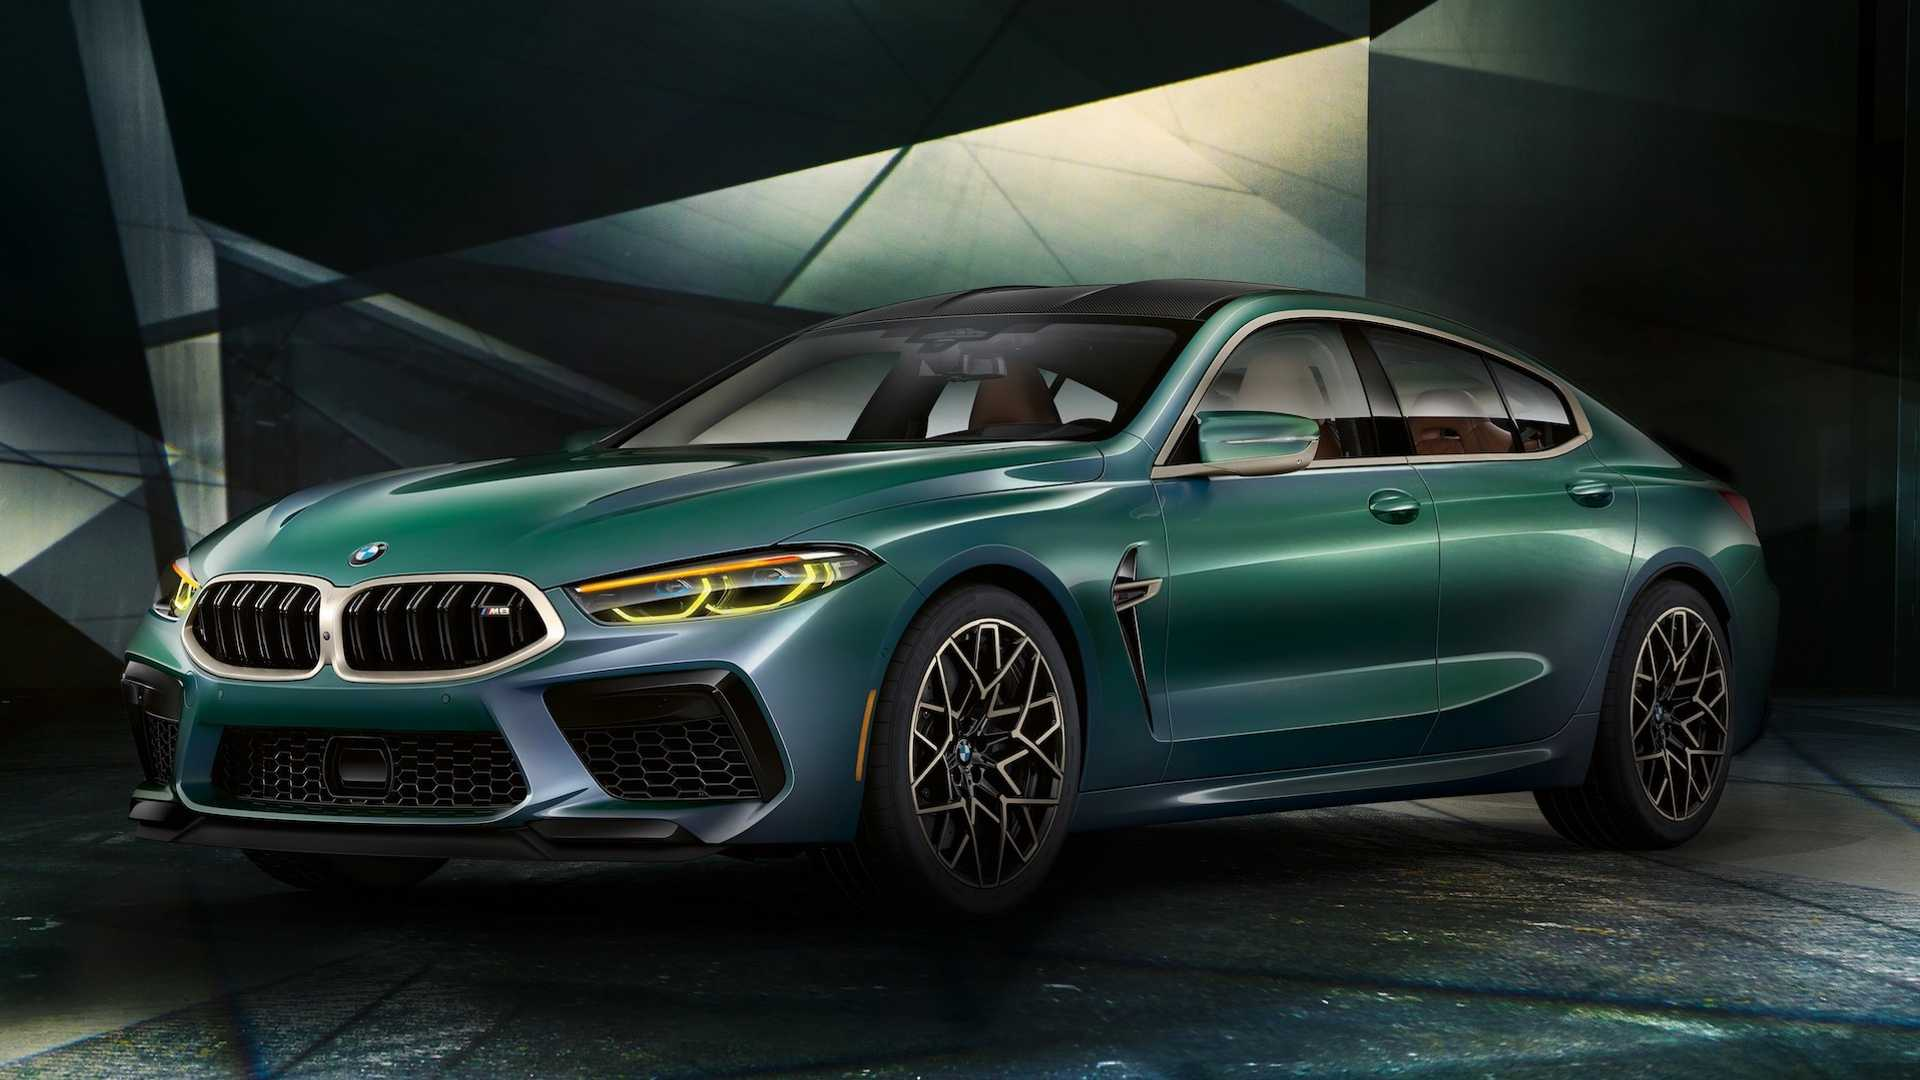 2020-bmw-m8-gran-coupe-competition-24